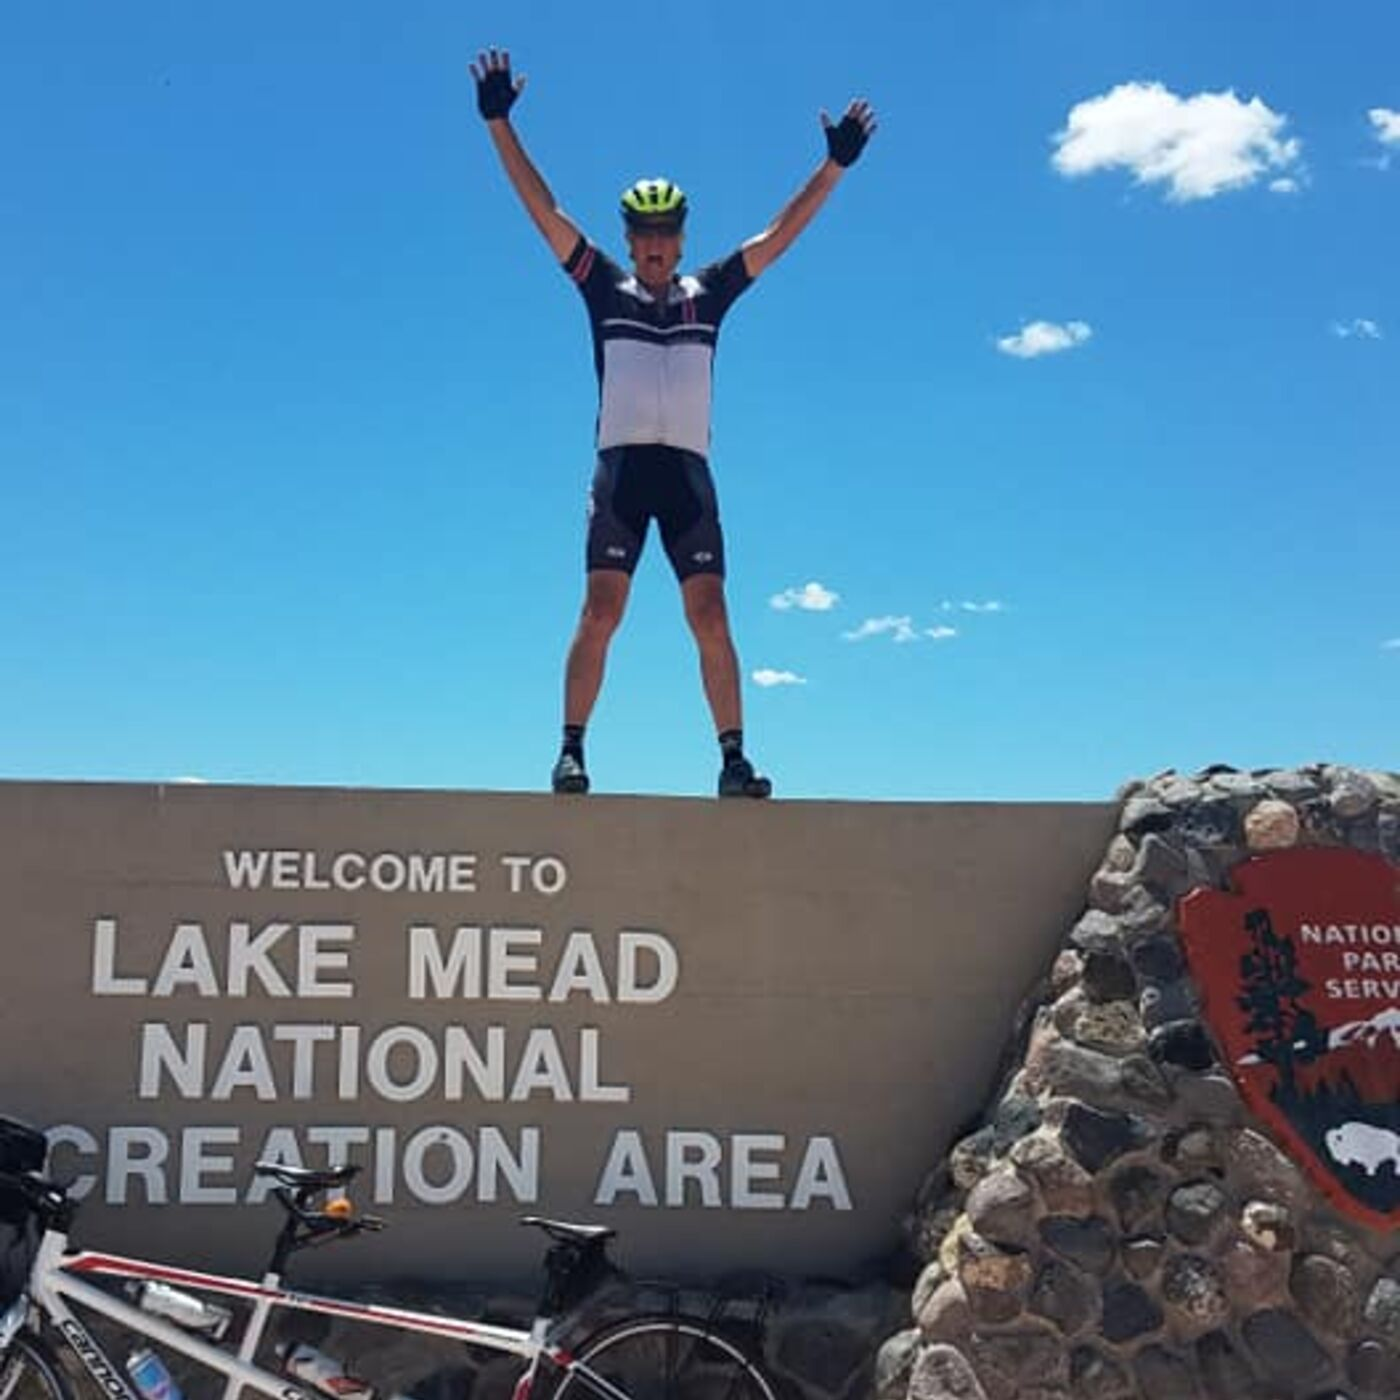 Biking Across the Country & More - Bob Hollowell, Part 2